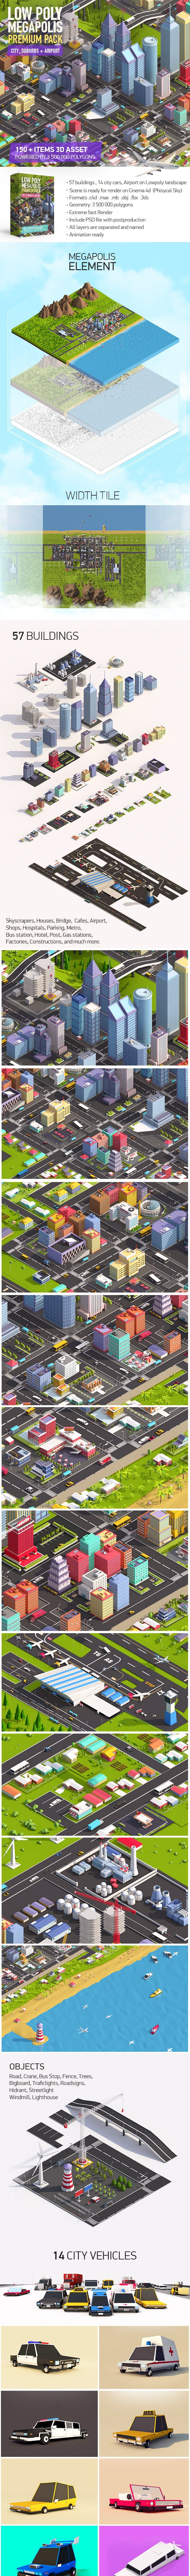 Low Poly Megapolis City Premium Pack (Landscape, Buildings, Airport) - 3DOcean Item for Sale